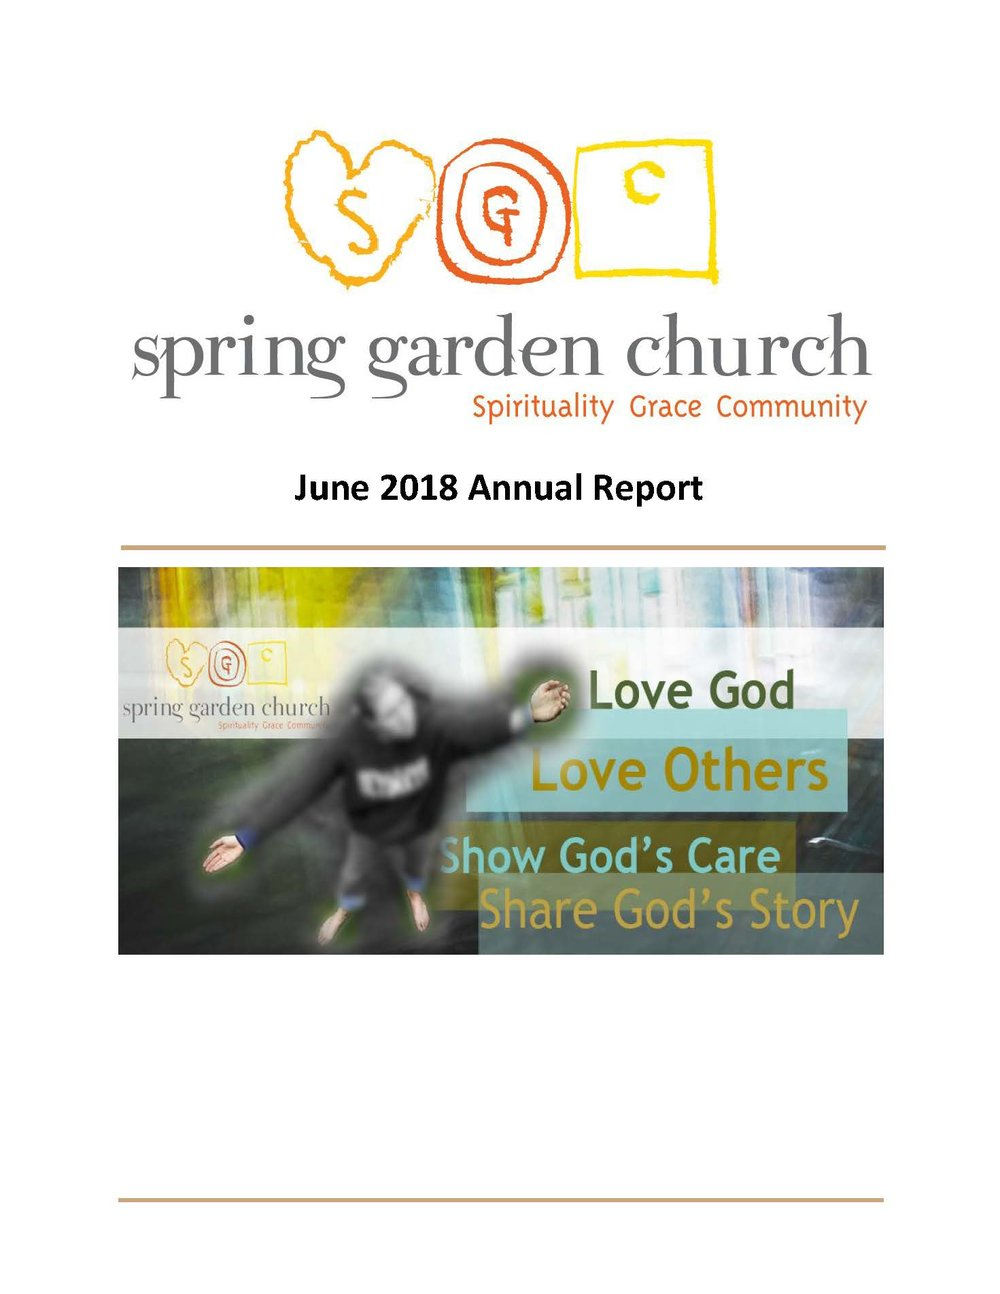 SGC Annual Report 2018 COVER.jpg